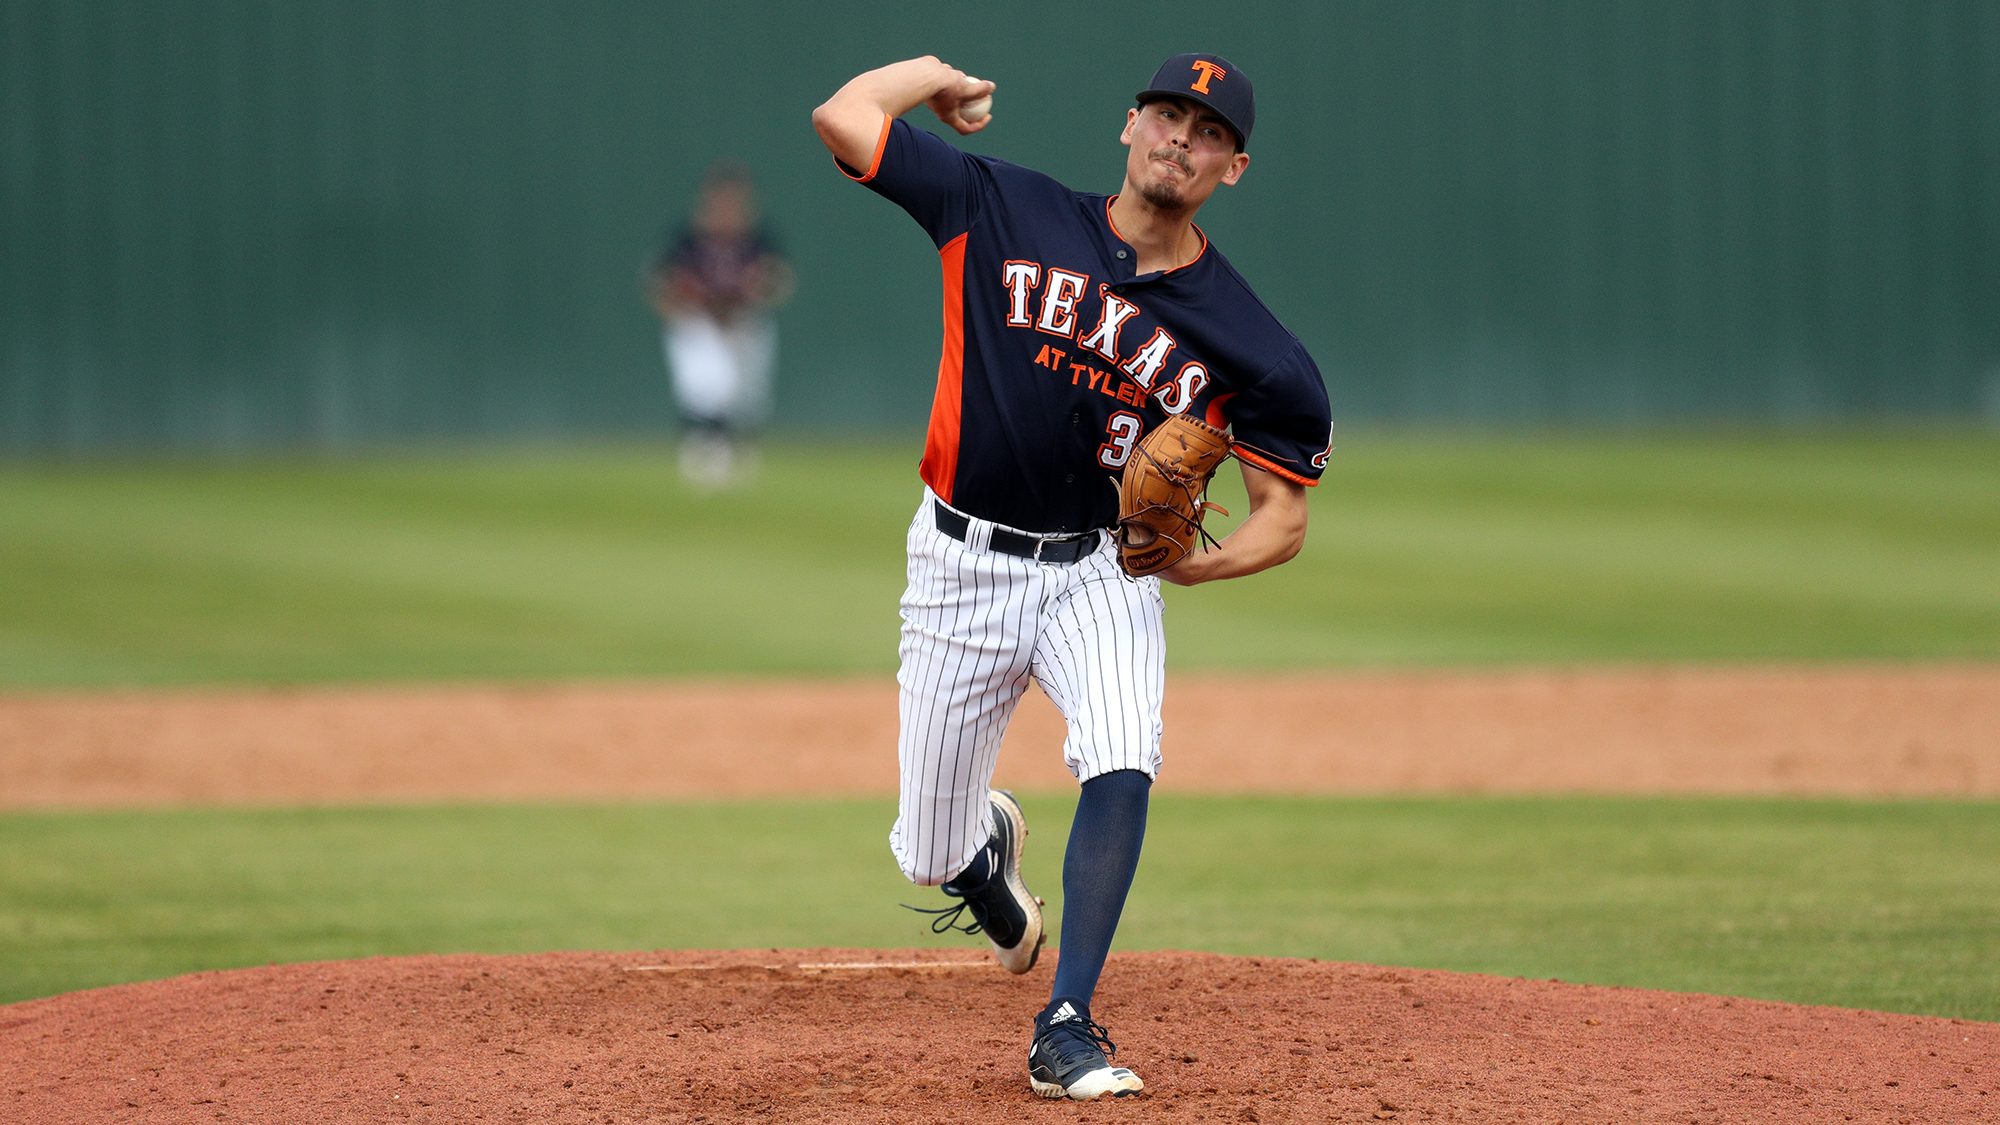 Mcmillan Recognized For Summer Success University Of Texas At Tyler Athletics